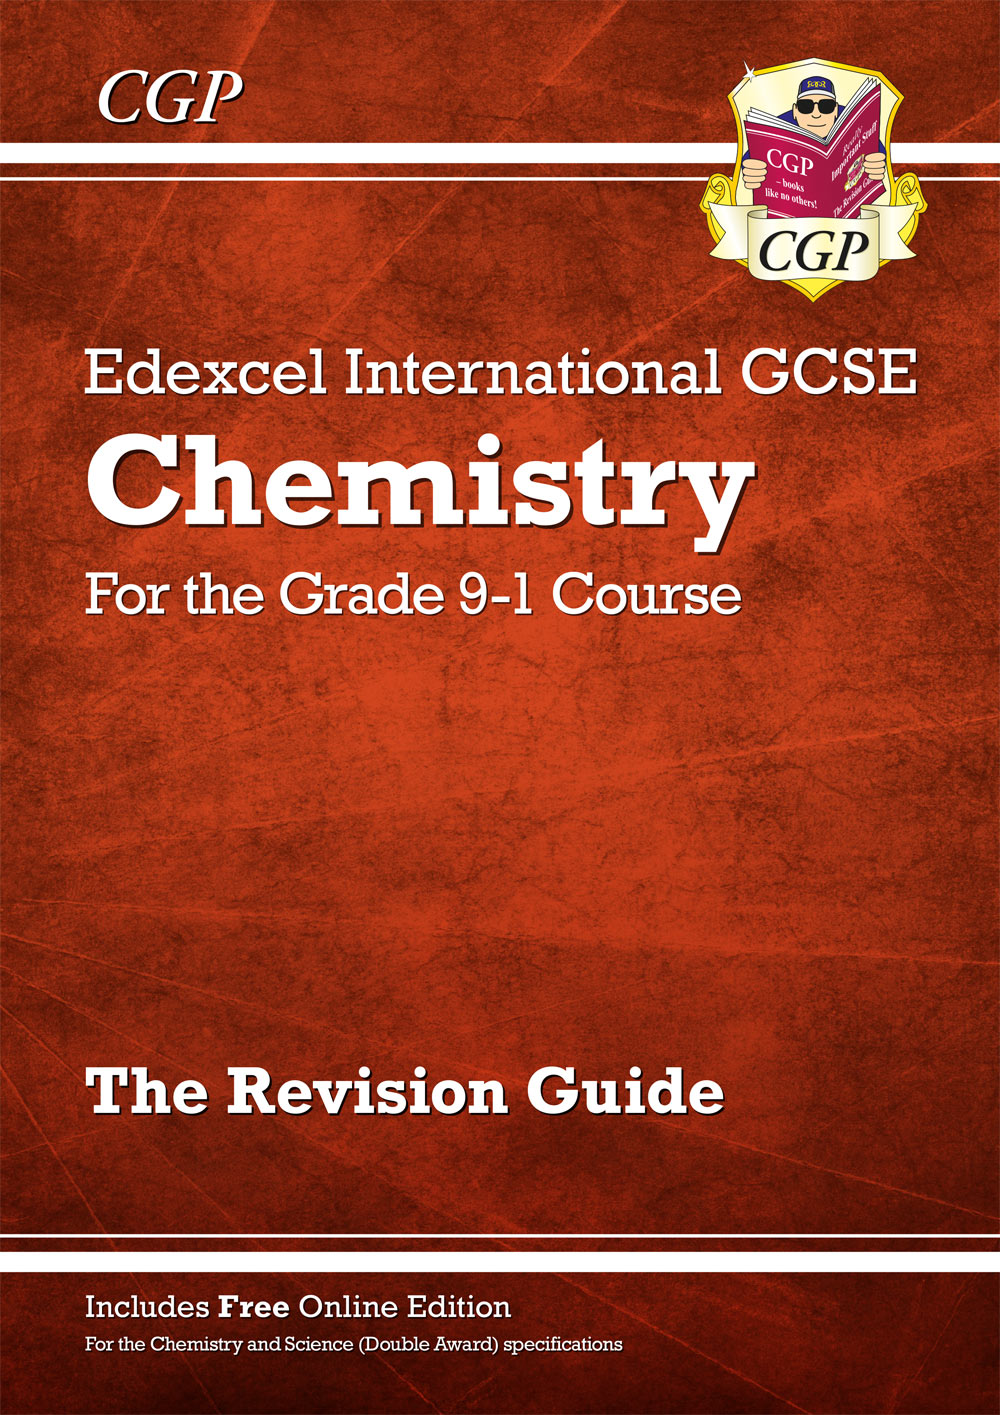 CERI42 - Grade 9-1 Edexcel International GCSE Chemistry: Revision Guide with Online Edition